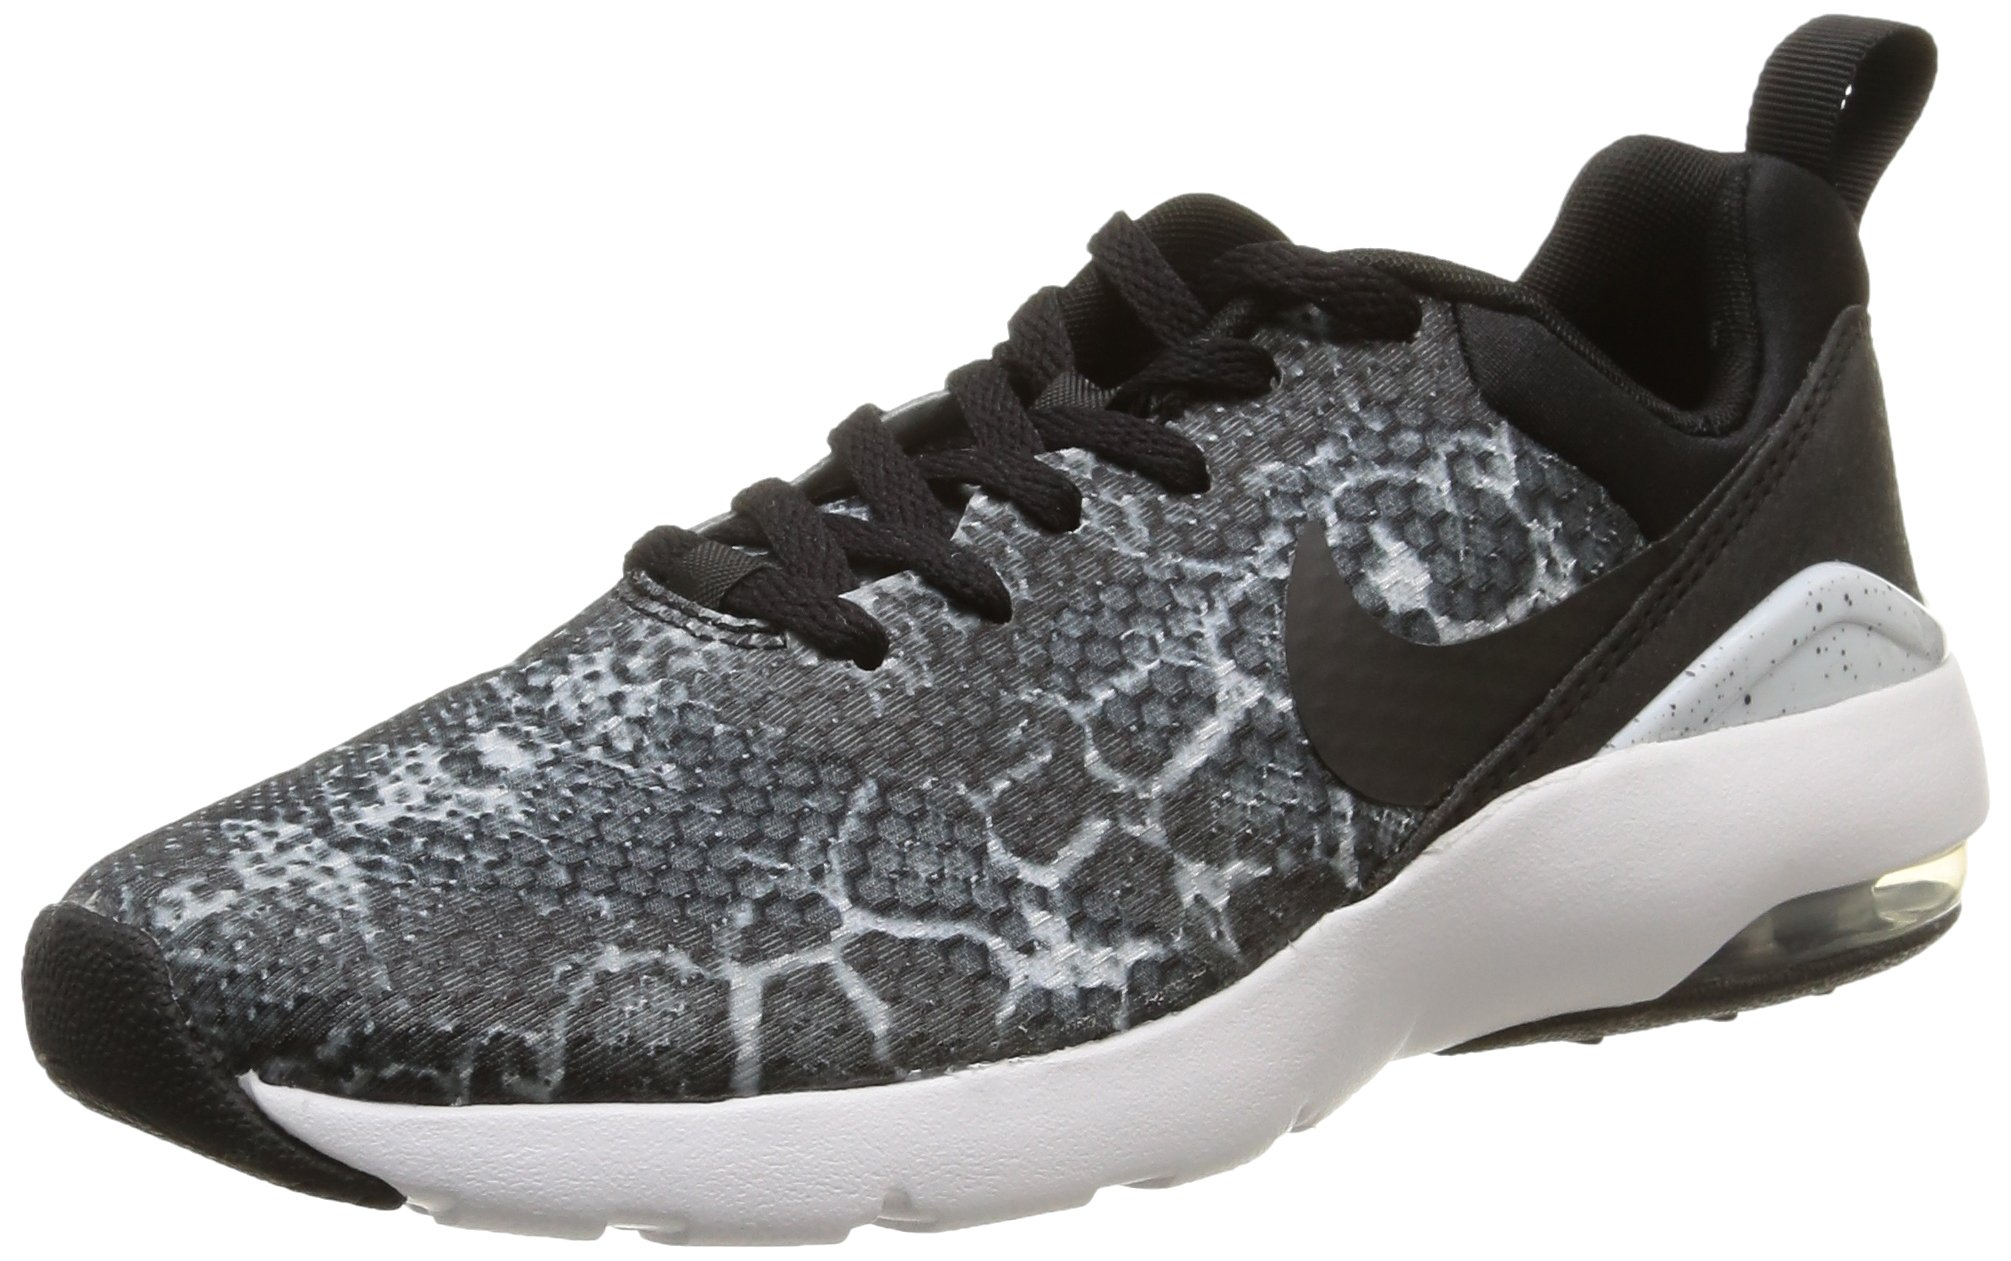 082660cdf40a Galleon - NIKE Women s Wmns Air Max Siren Print